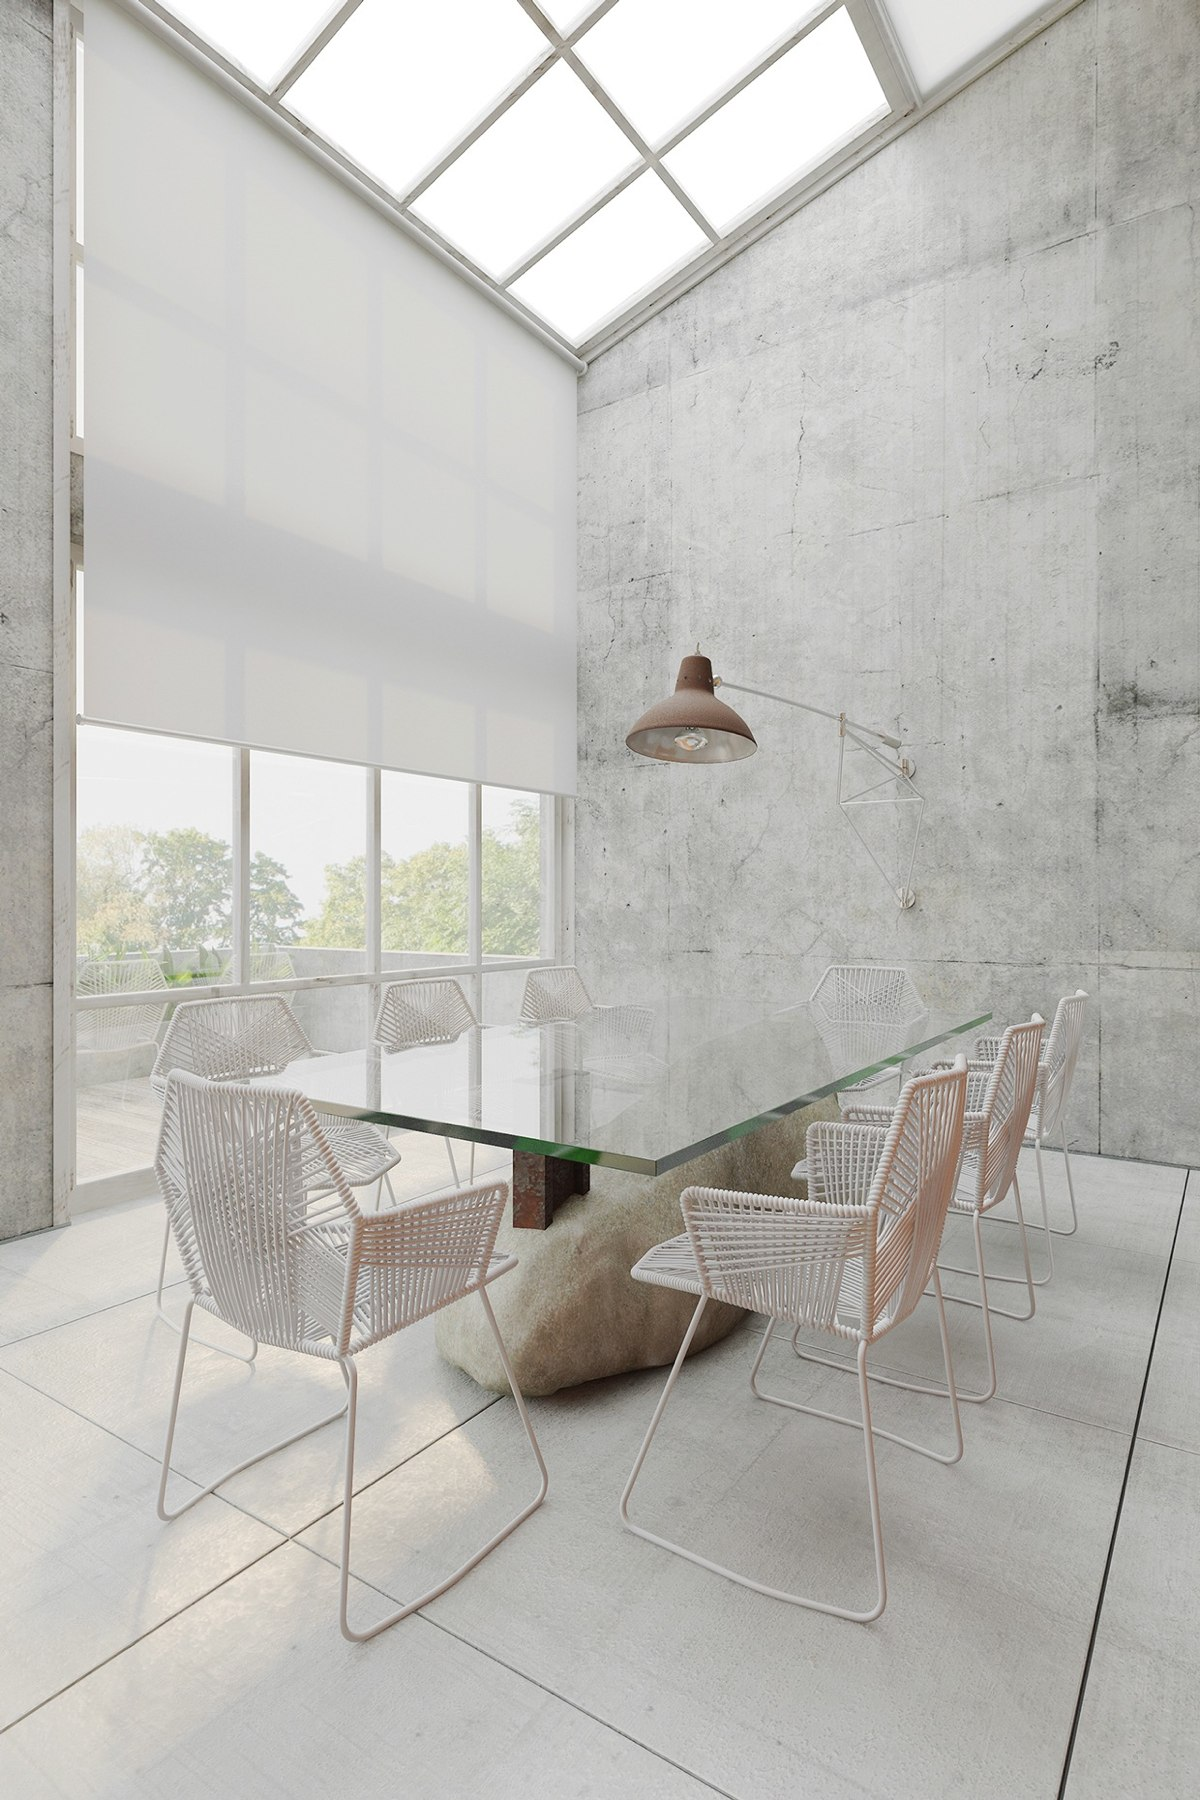 Bright White Dining Room - Homes that use a concrete finish to achieve beautiful results